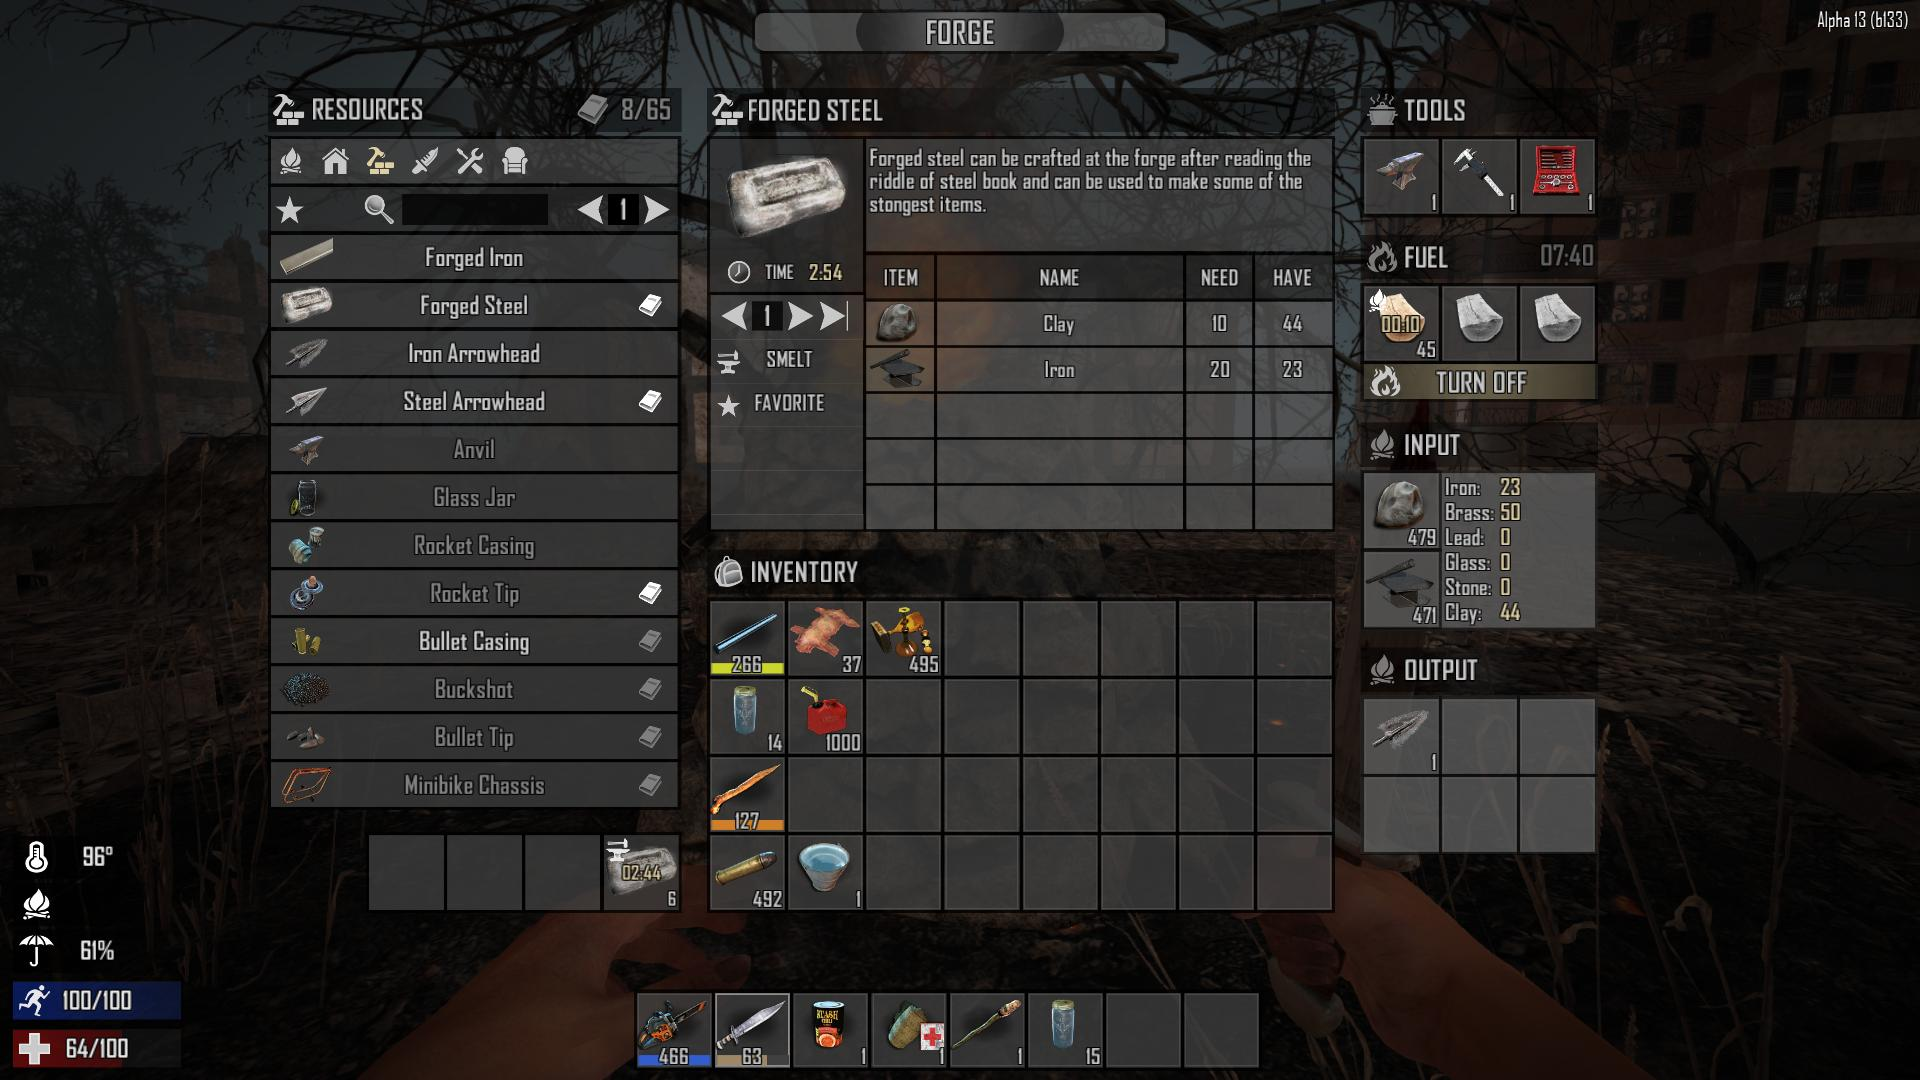 Days To Die Chainsaw Crafting